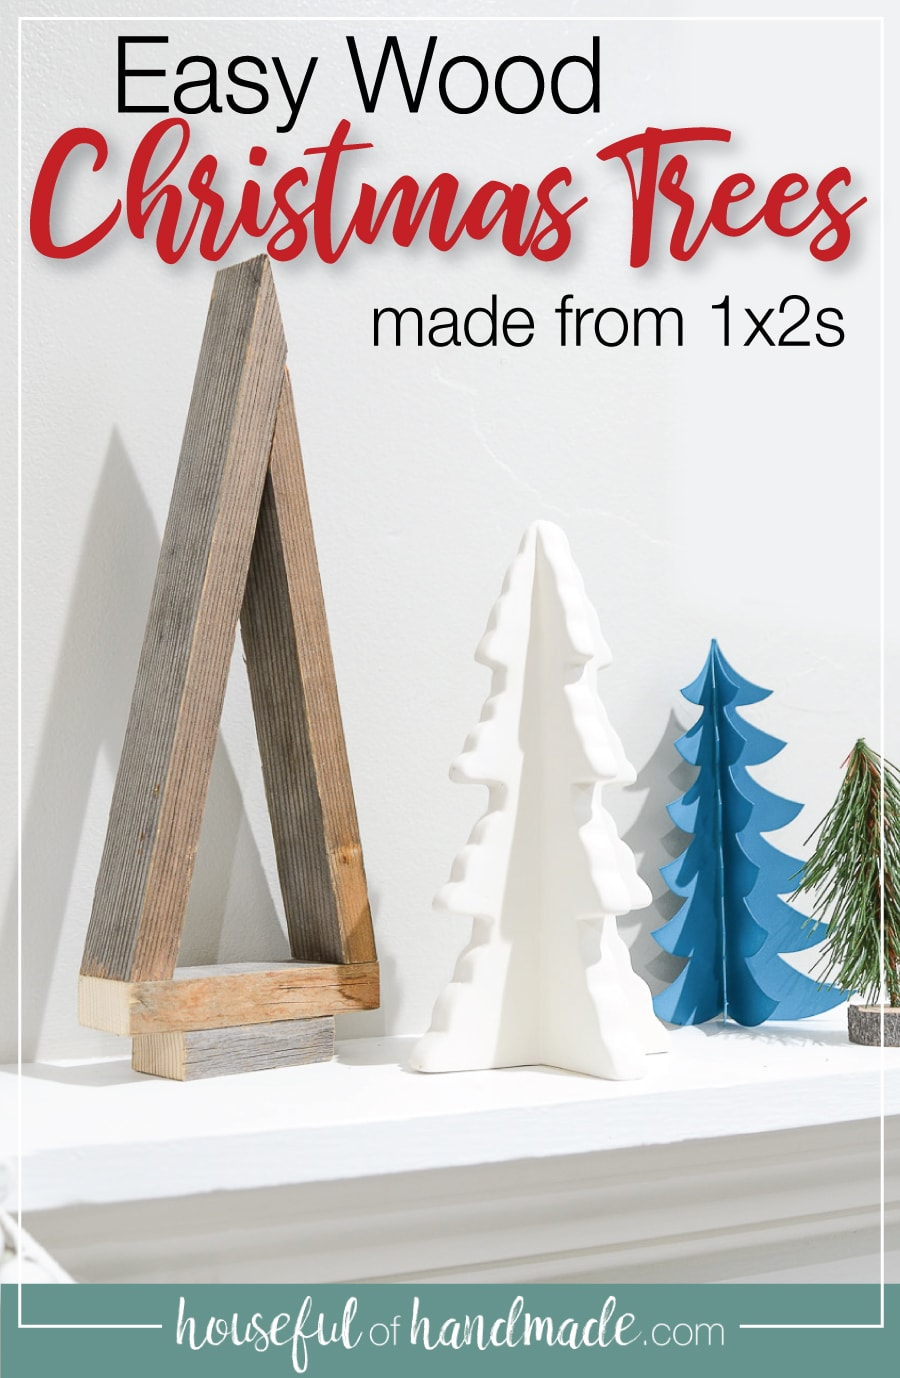 Picture of the easy DIY wood Christmas tree on the mantel with text overlay: Easy Wood Christmas trees made from 1x2s and housefulofhandmade.com logo.